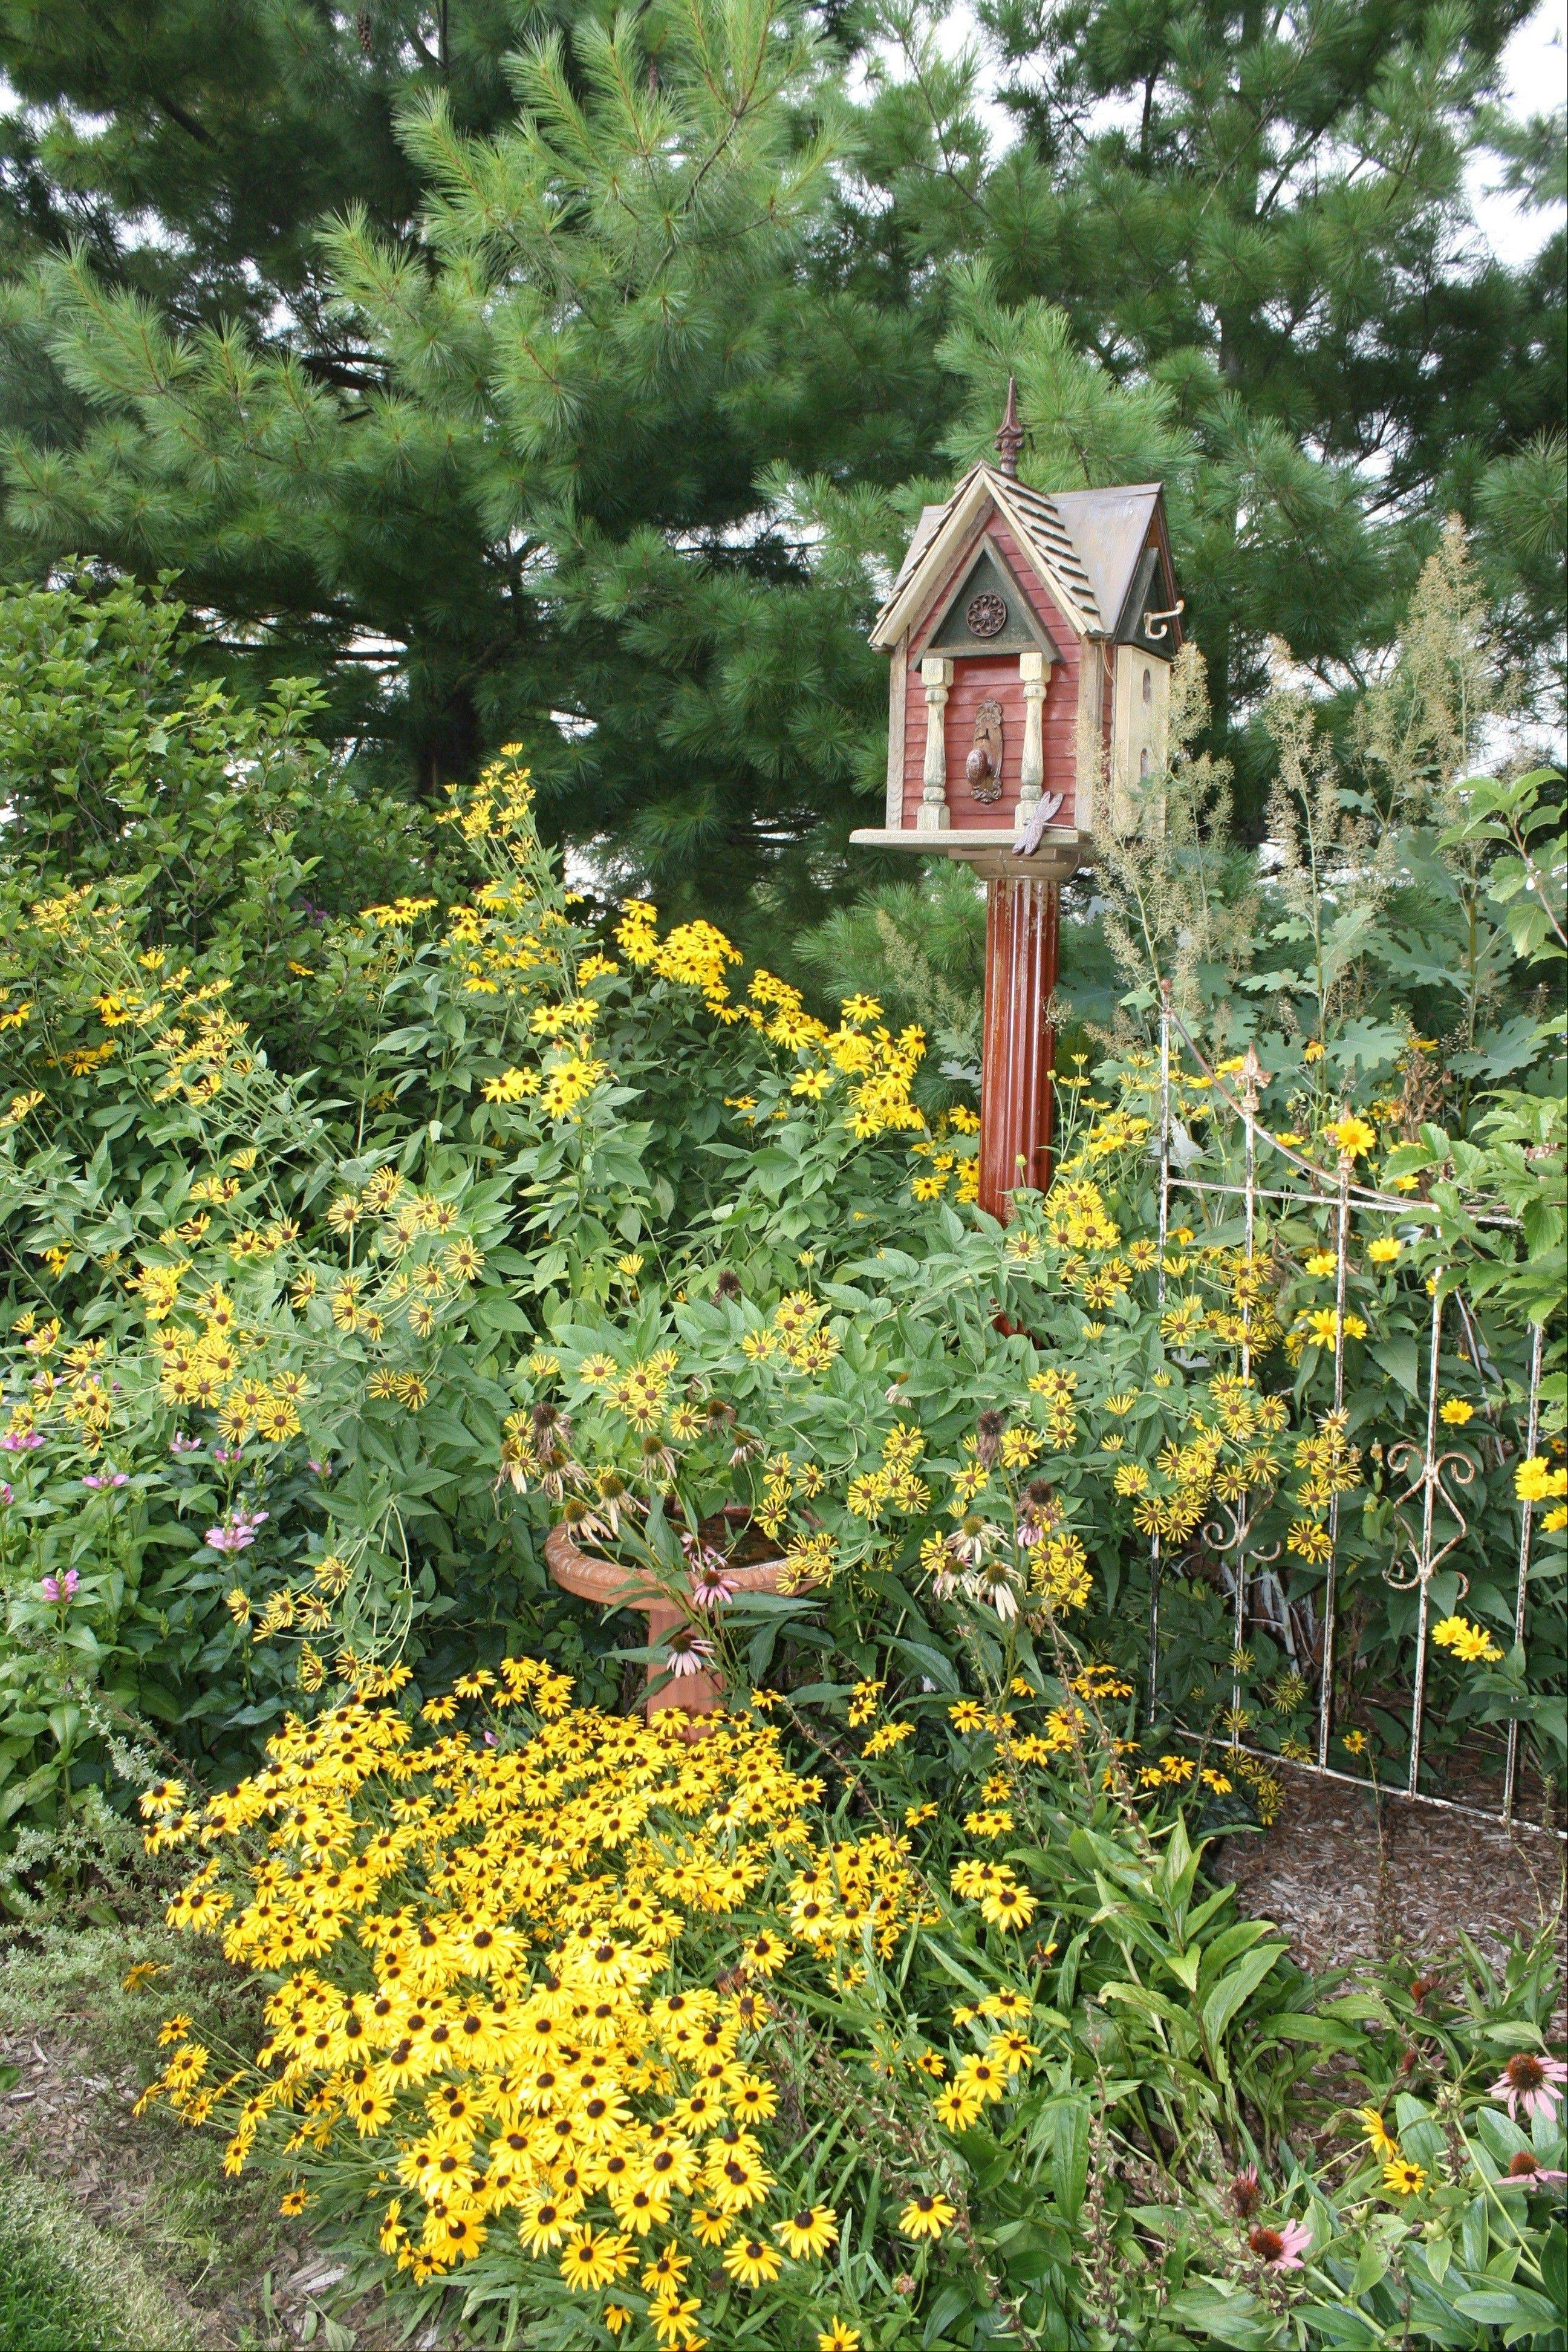 Five St. Charles gardens will be open to the public Saturday, July 14, when the Pottatatomie Garden Club of St. Charles holds its biennial garden walk.